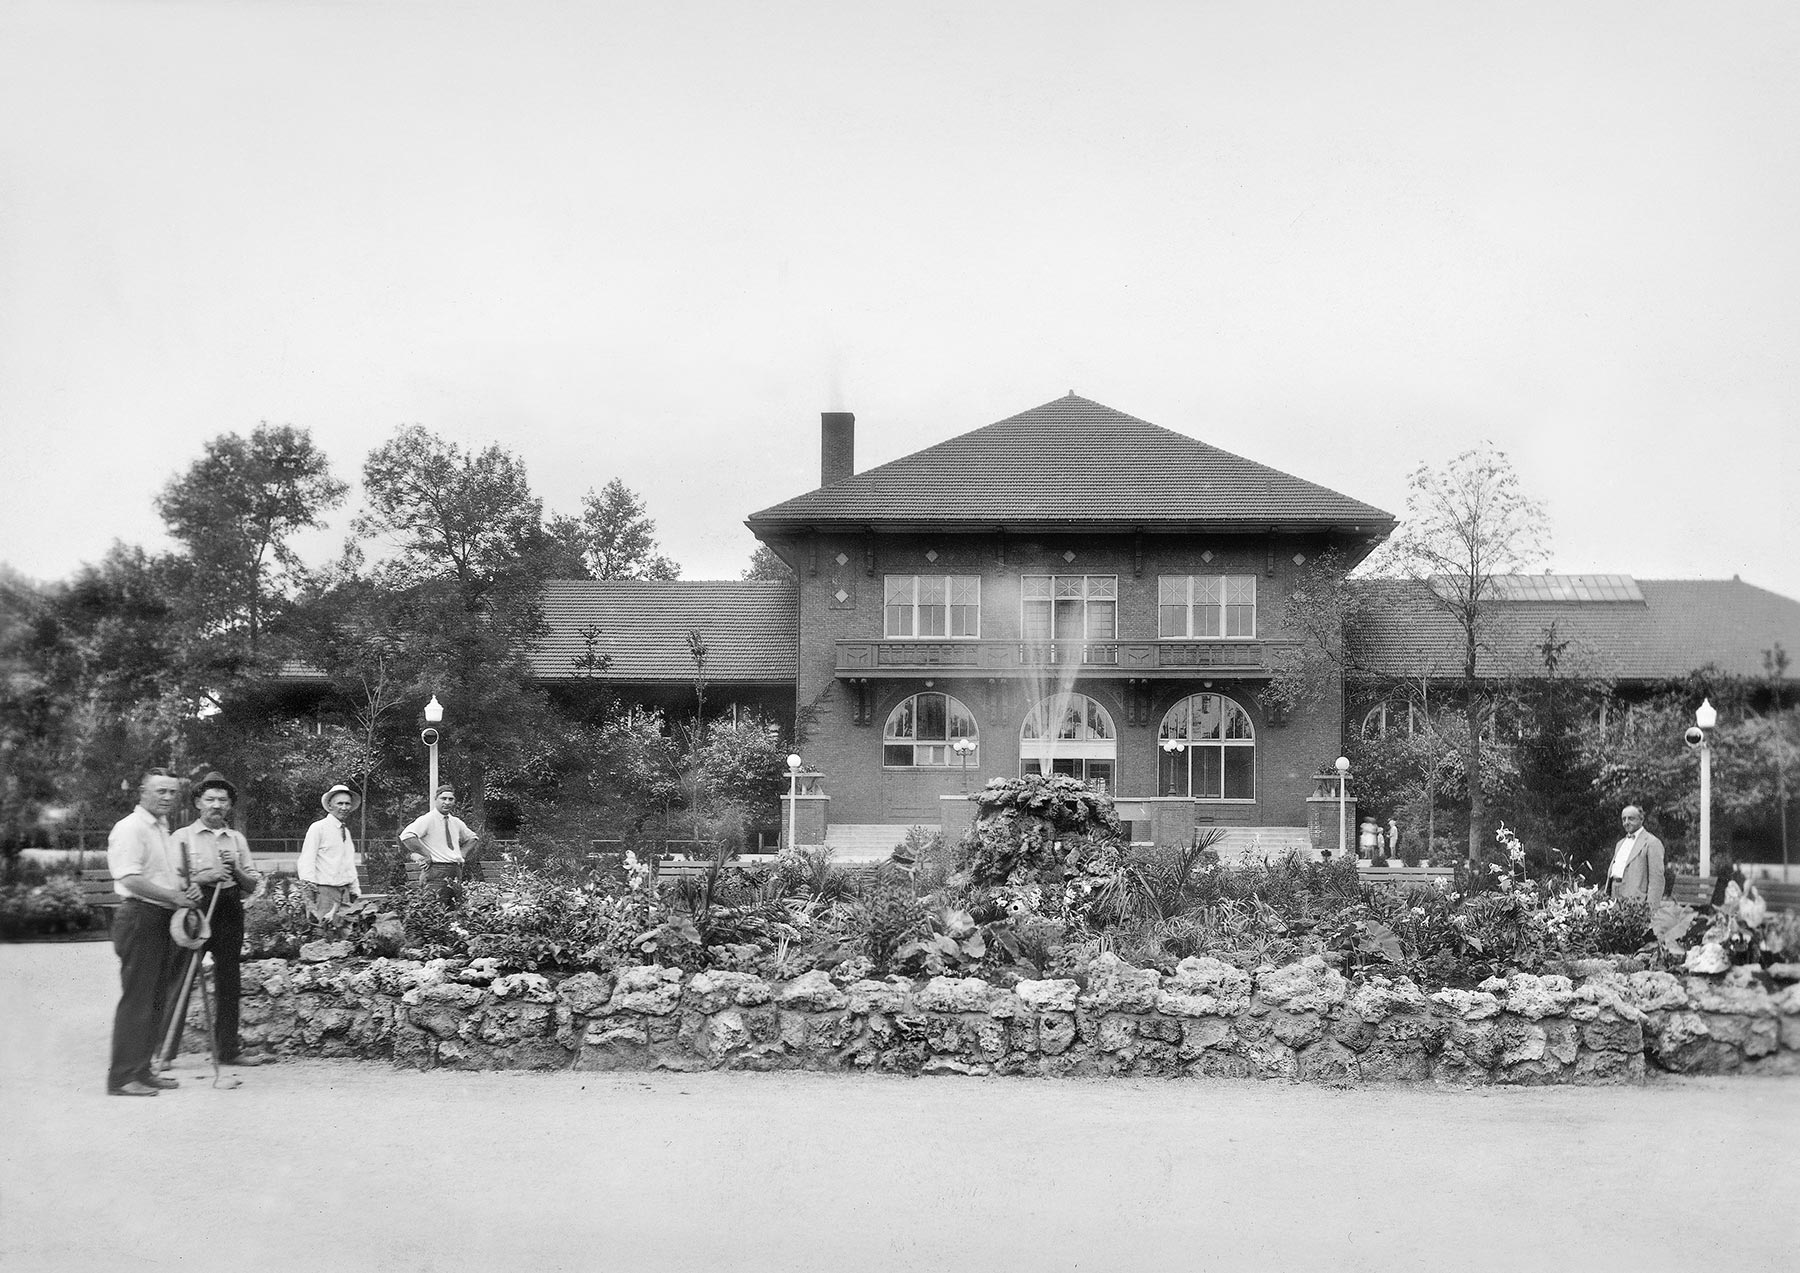 Independence Park Field House, ca. 1928, Chicago Park District Records: Photographs, Special Collections, Chicago Public Library.